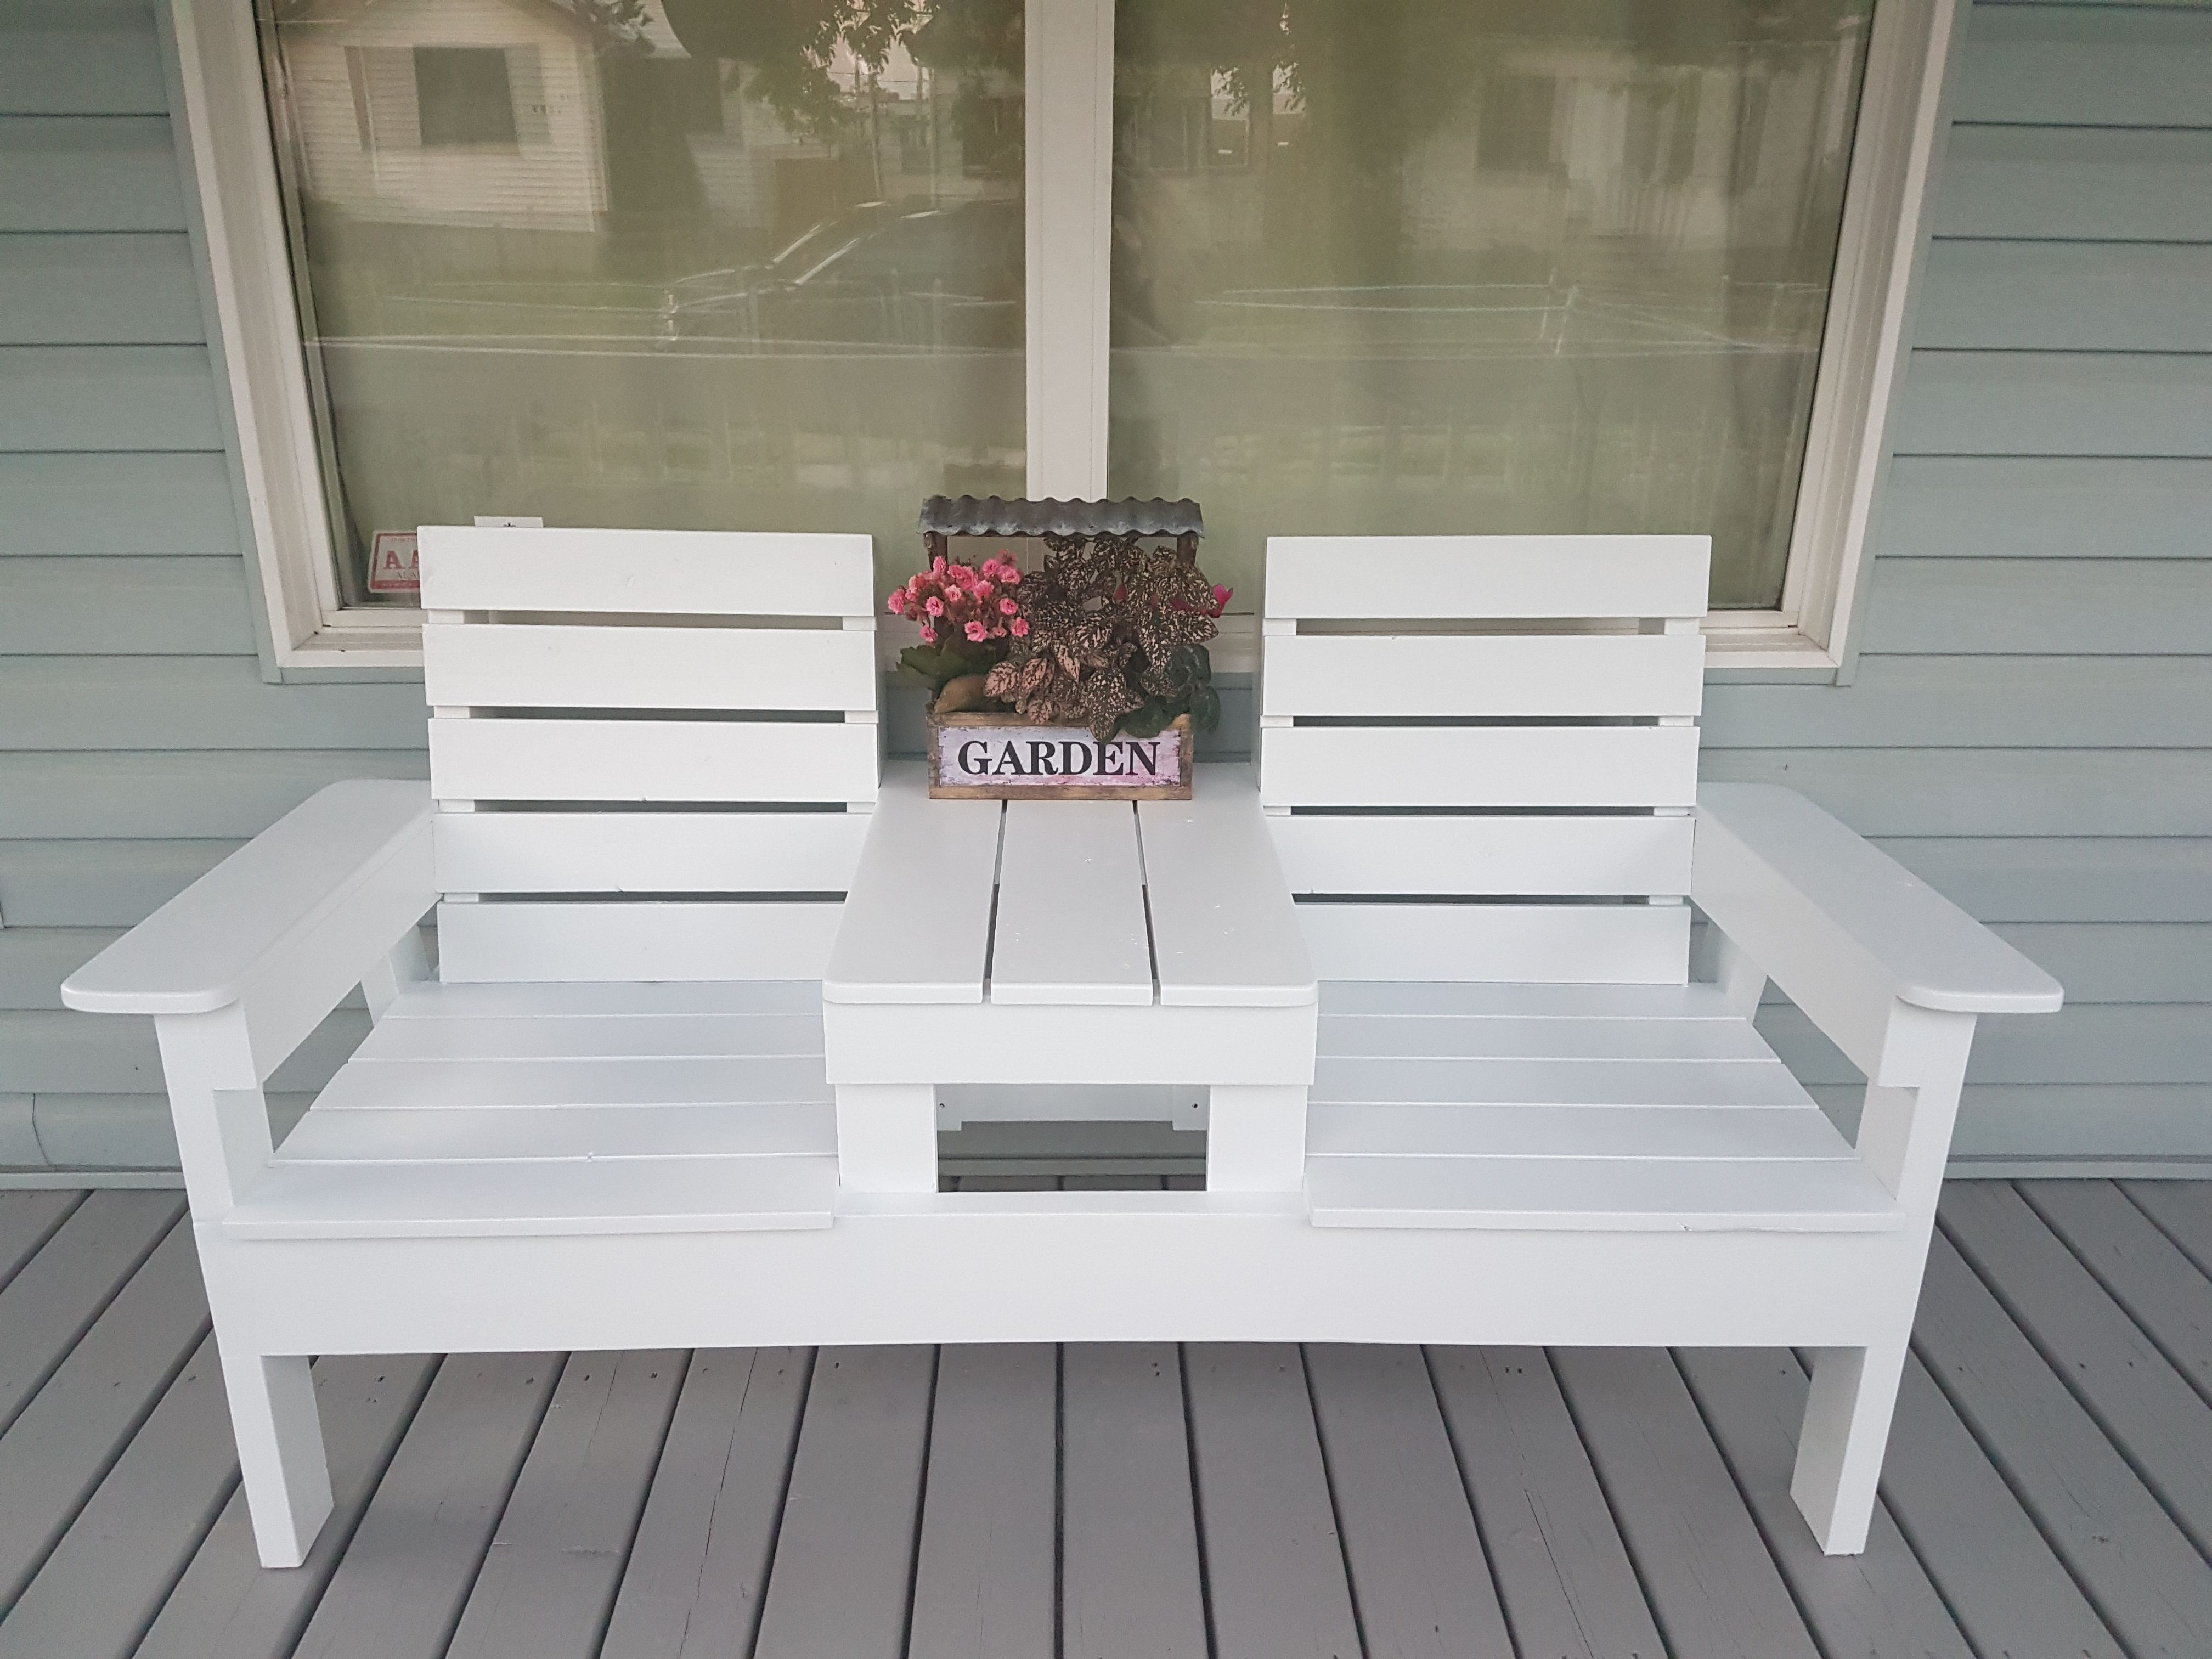 Diy Double Chair Bench With Table Diy Projects Diypete With Images Diy Bench Outdoor Best Outdoor Furniture Top Outdoor Furniture